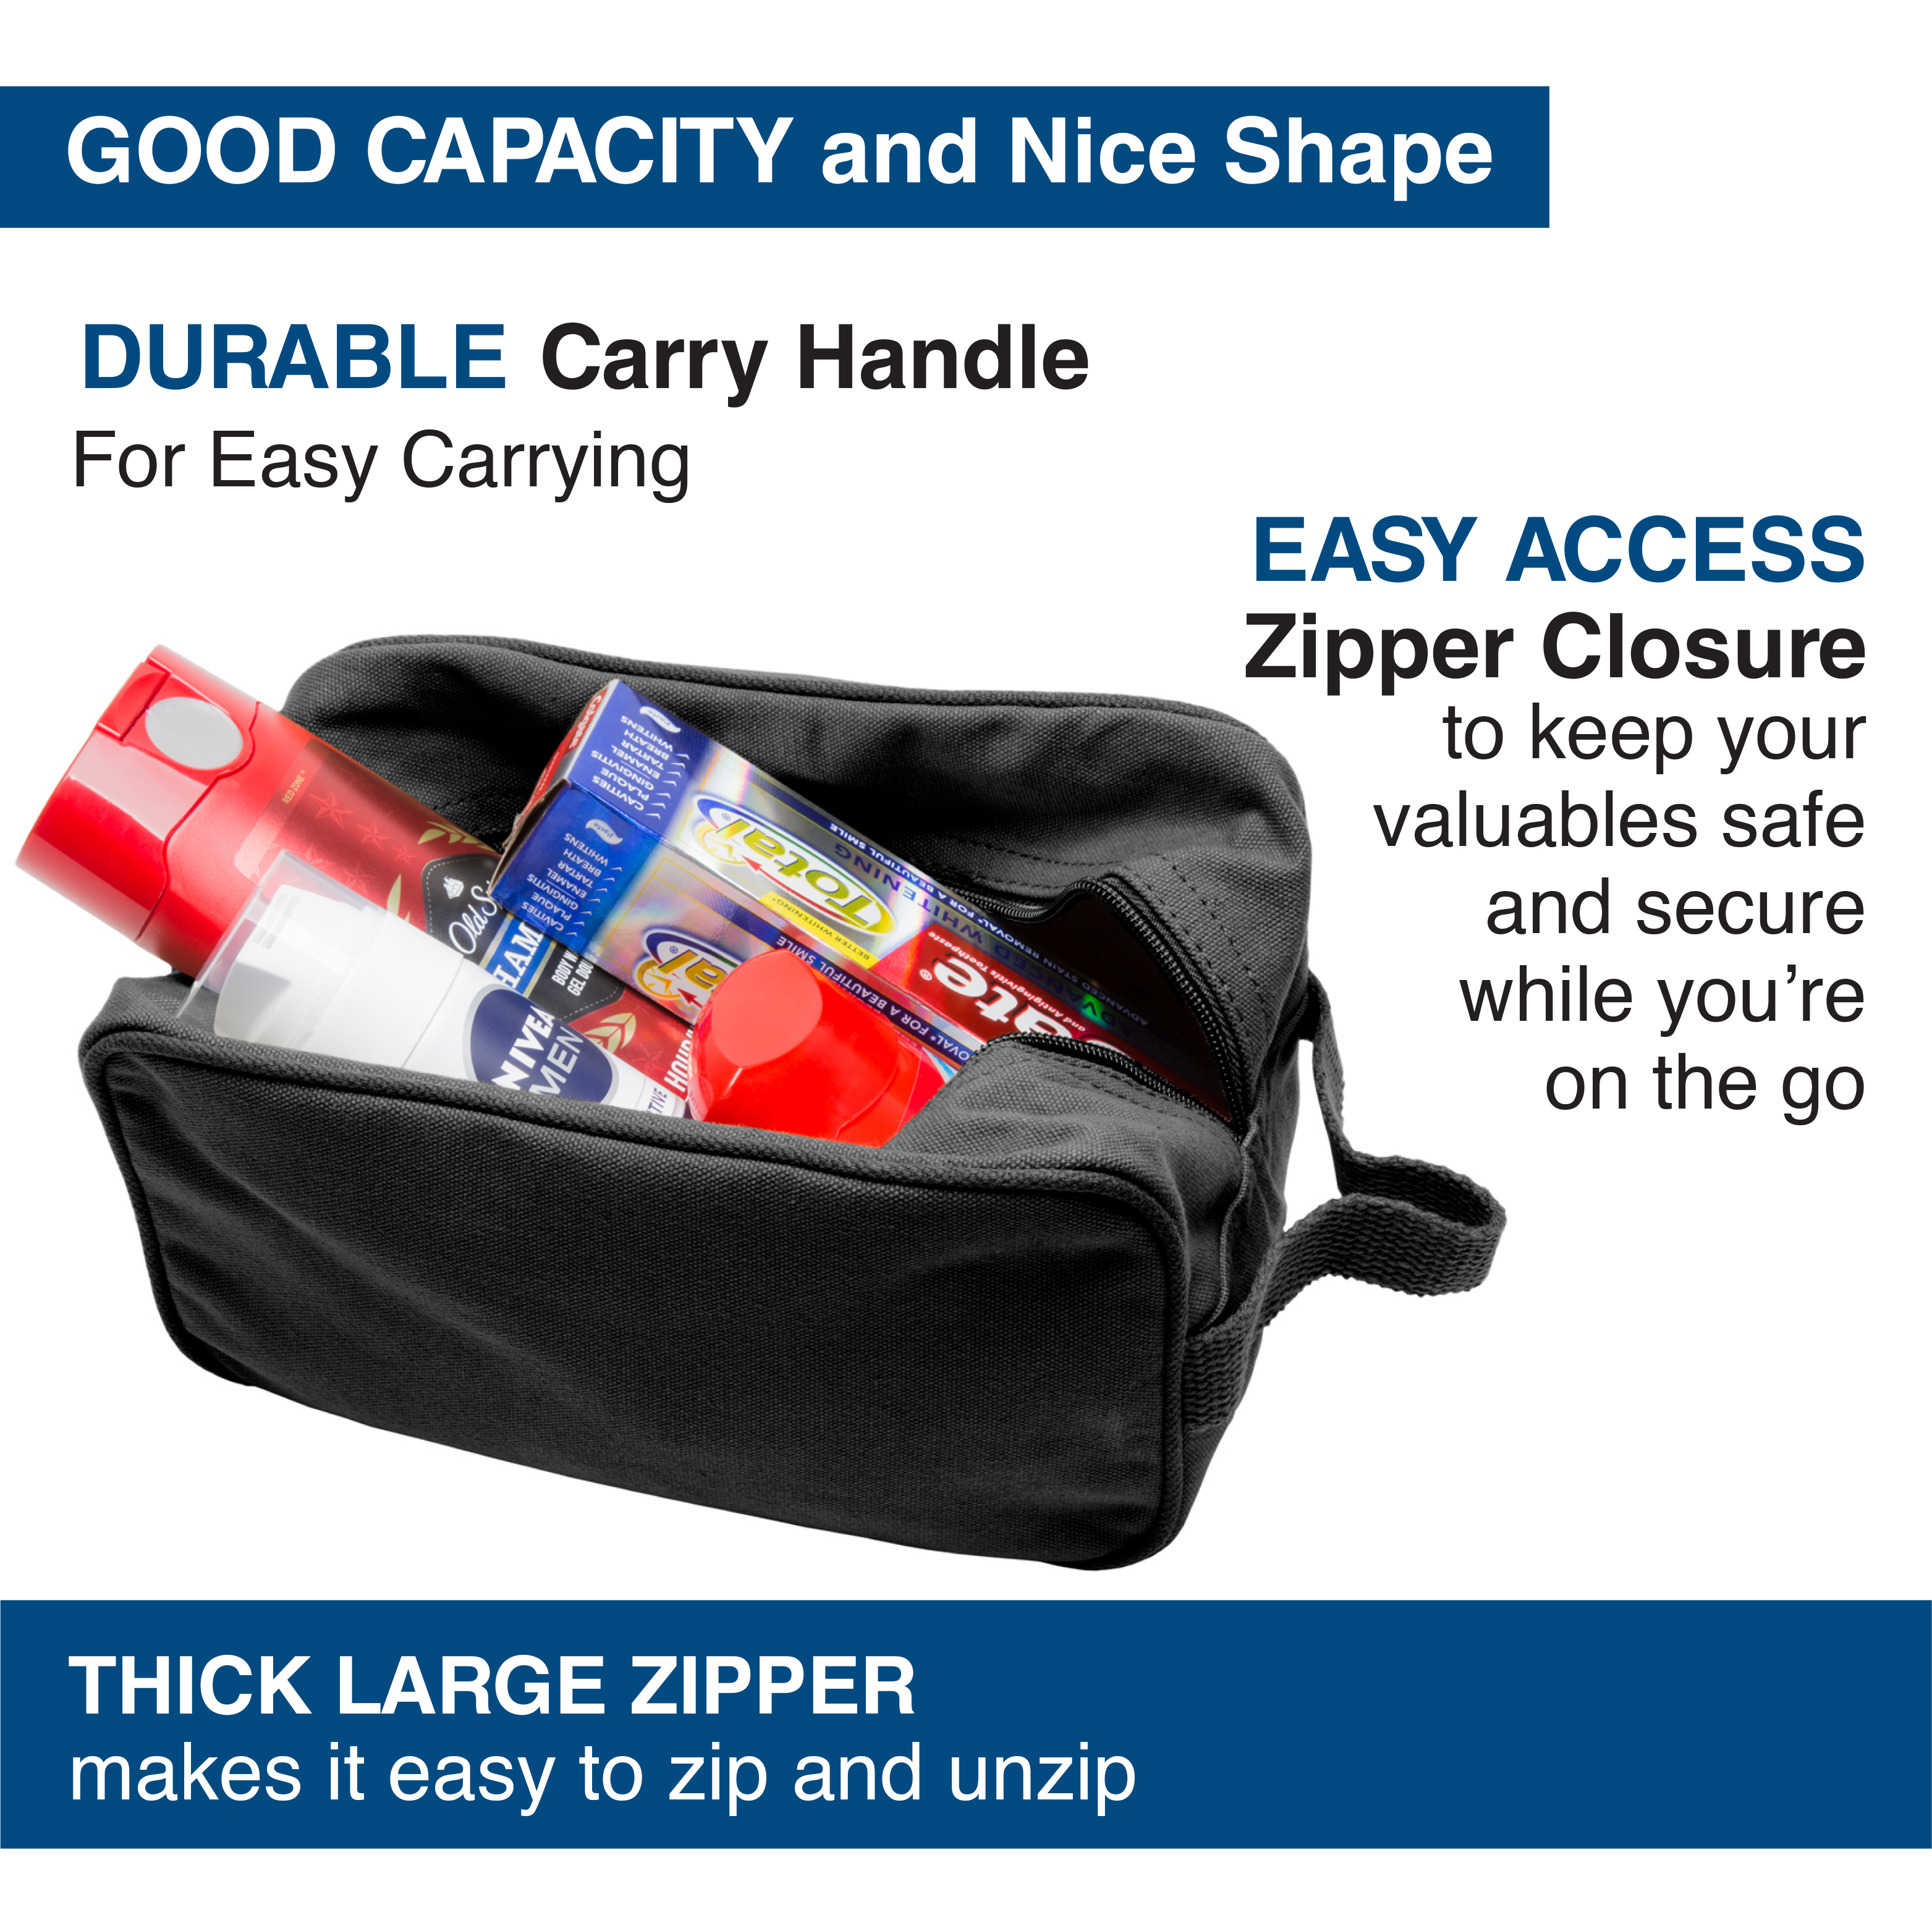 Ruger-Firearms-Canvas-Shower-Kit-Travel-Toiletry-Bag-Case thumbnail 4